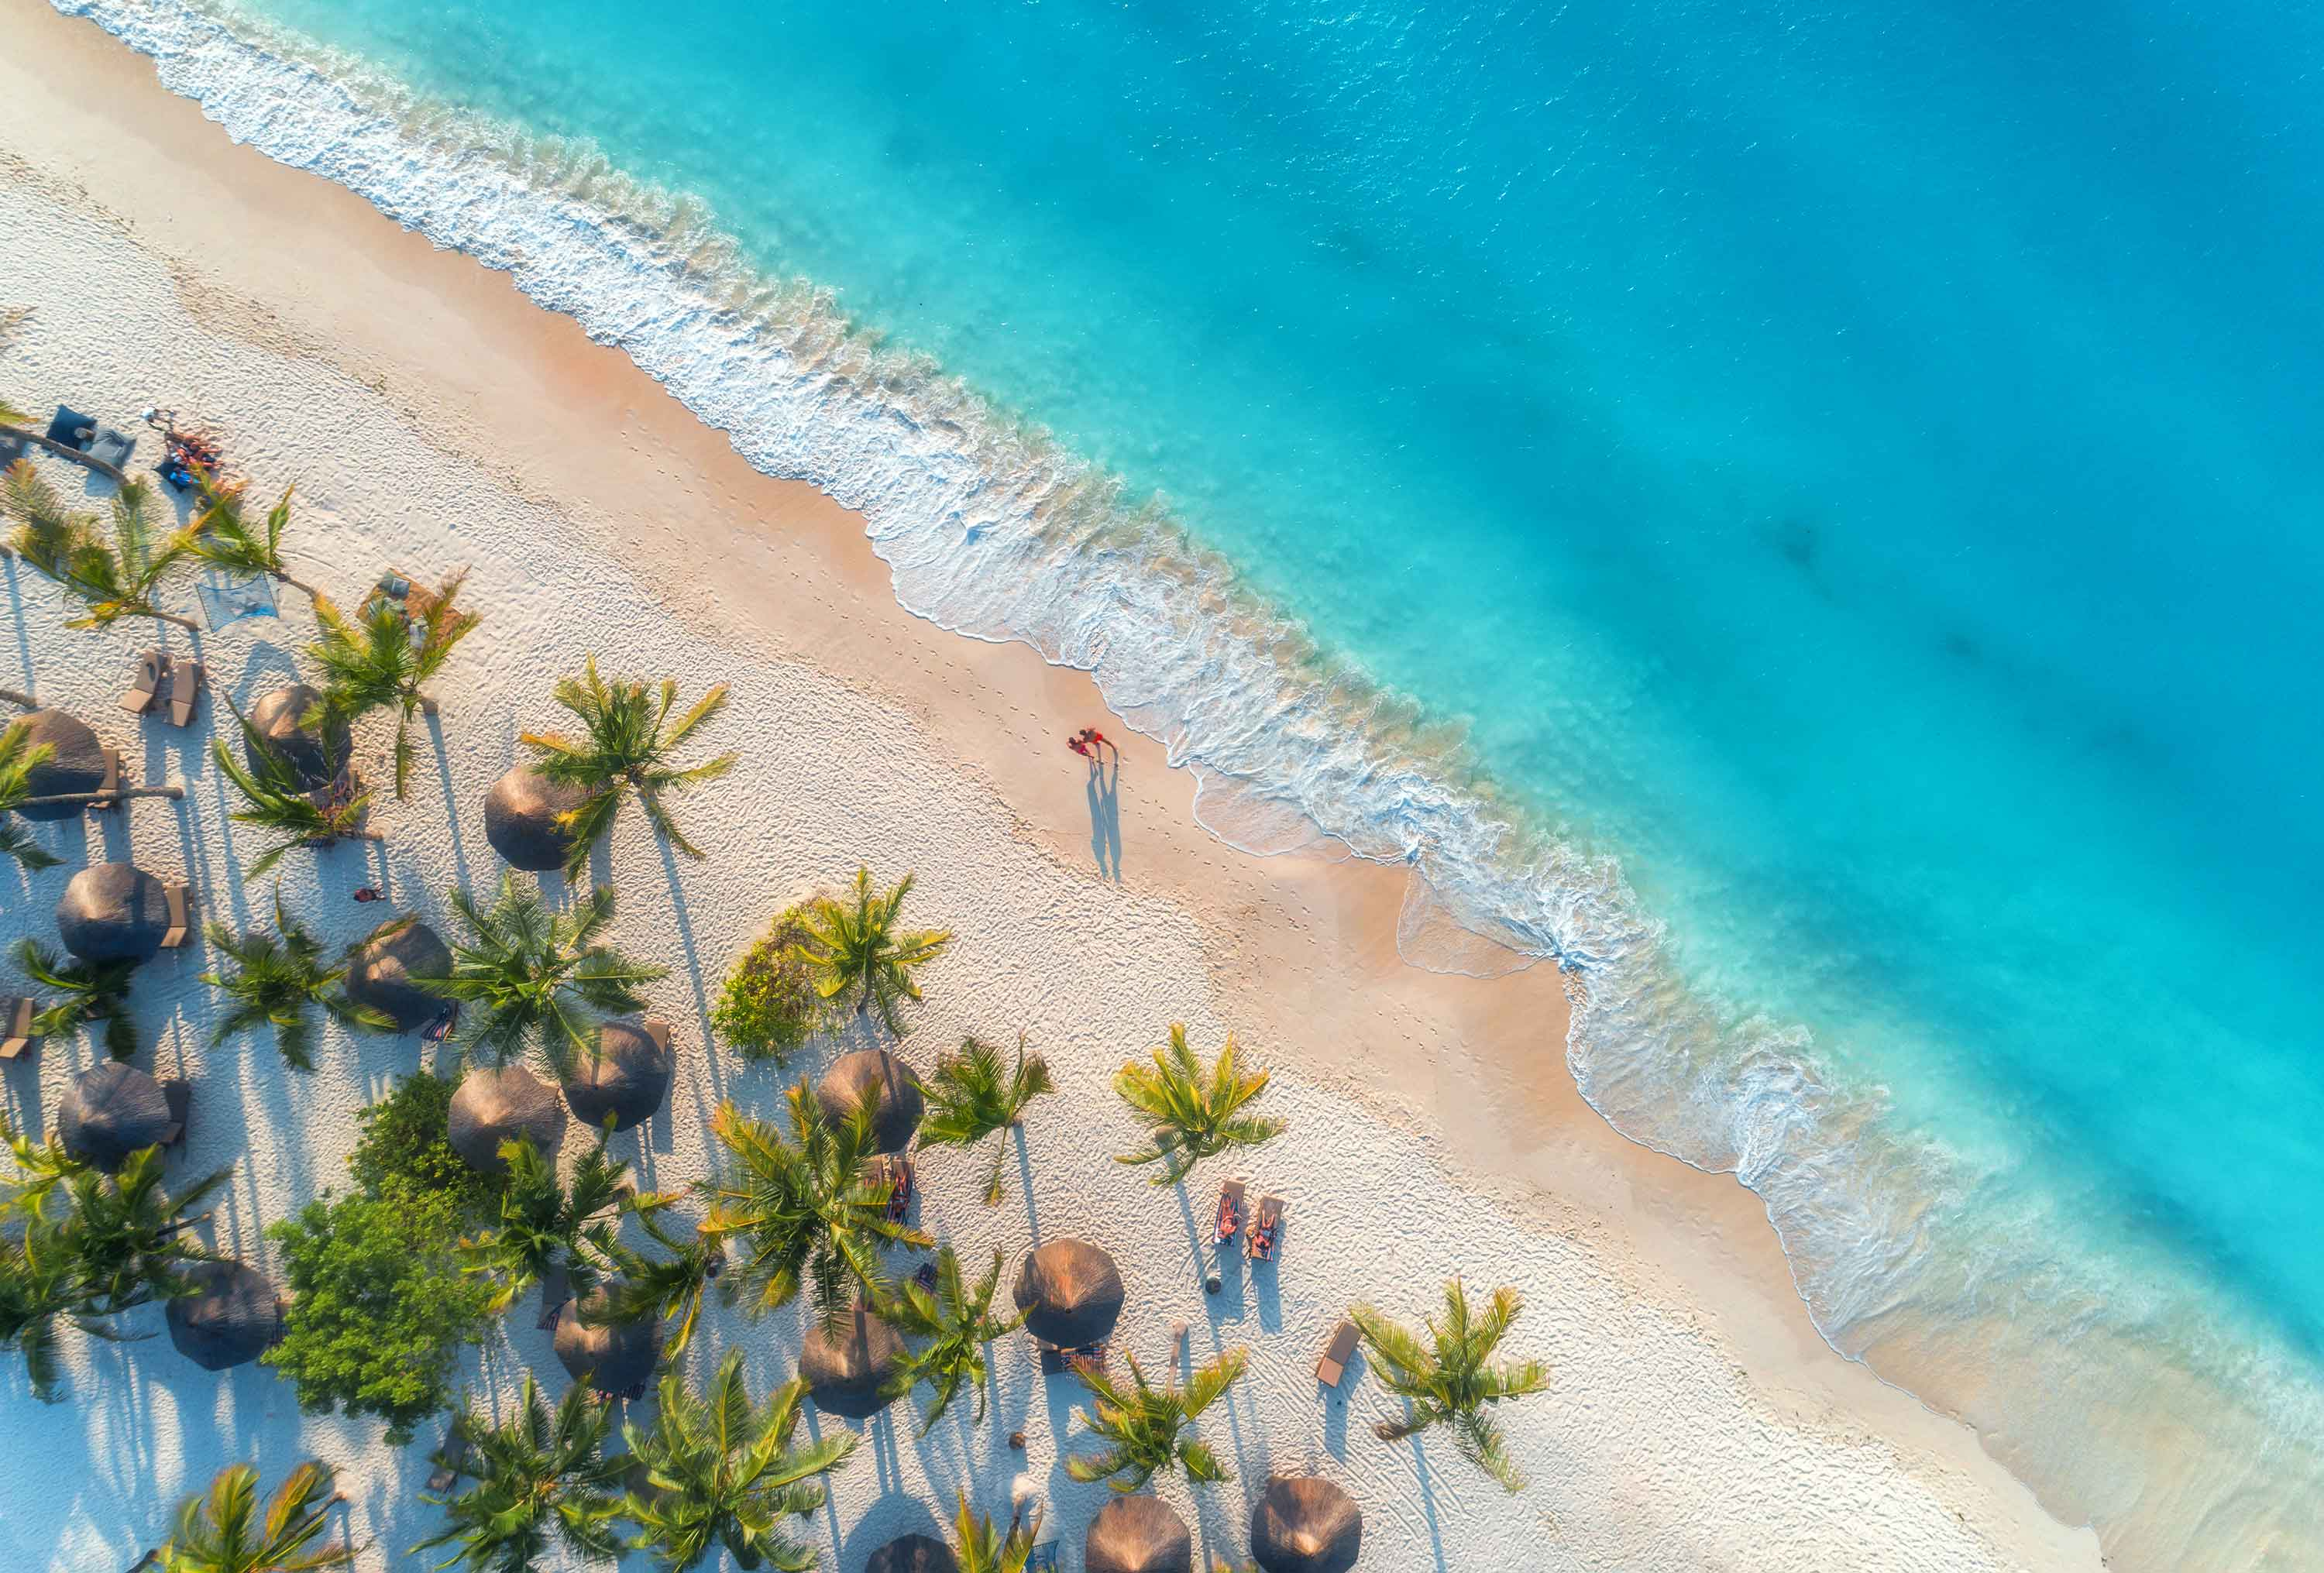 aerial-view-of-umbrellas-palms-on-the-sandy-beach--JZTC7AQ